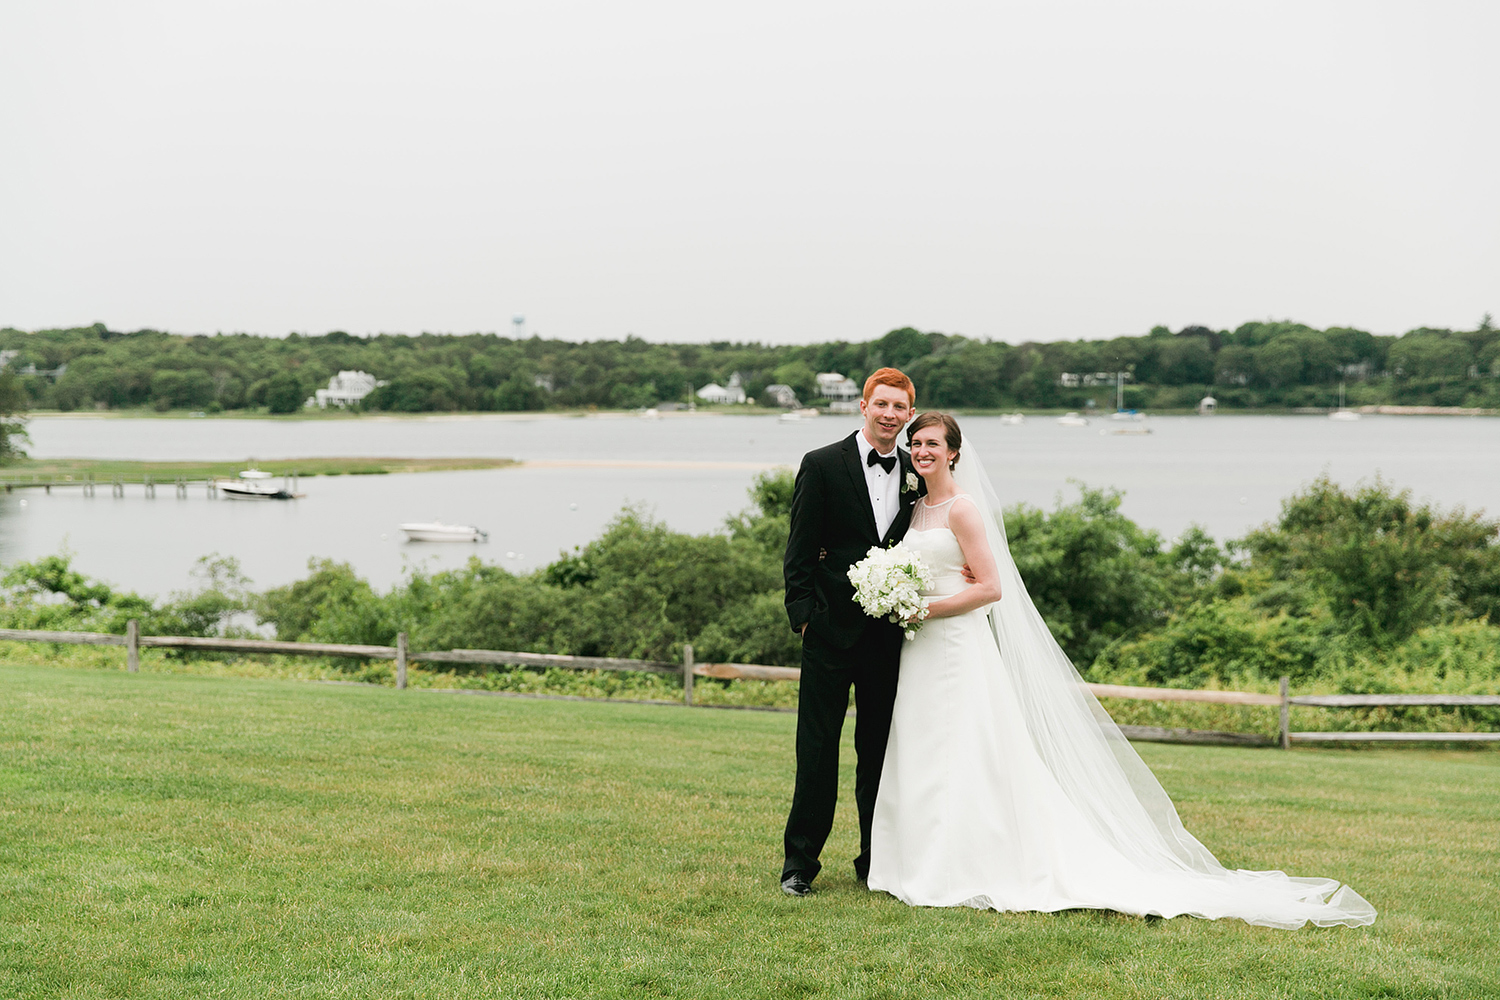 oyster_harbors_wedding_32.jpg